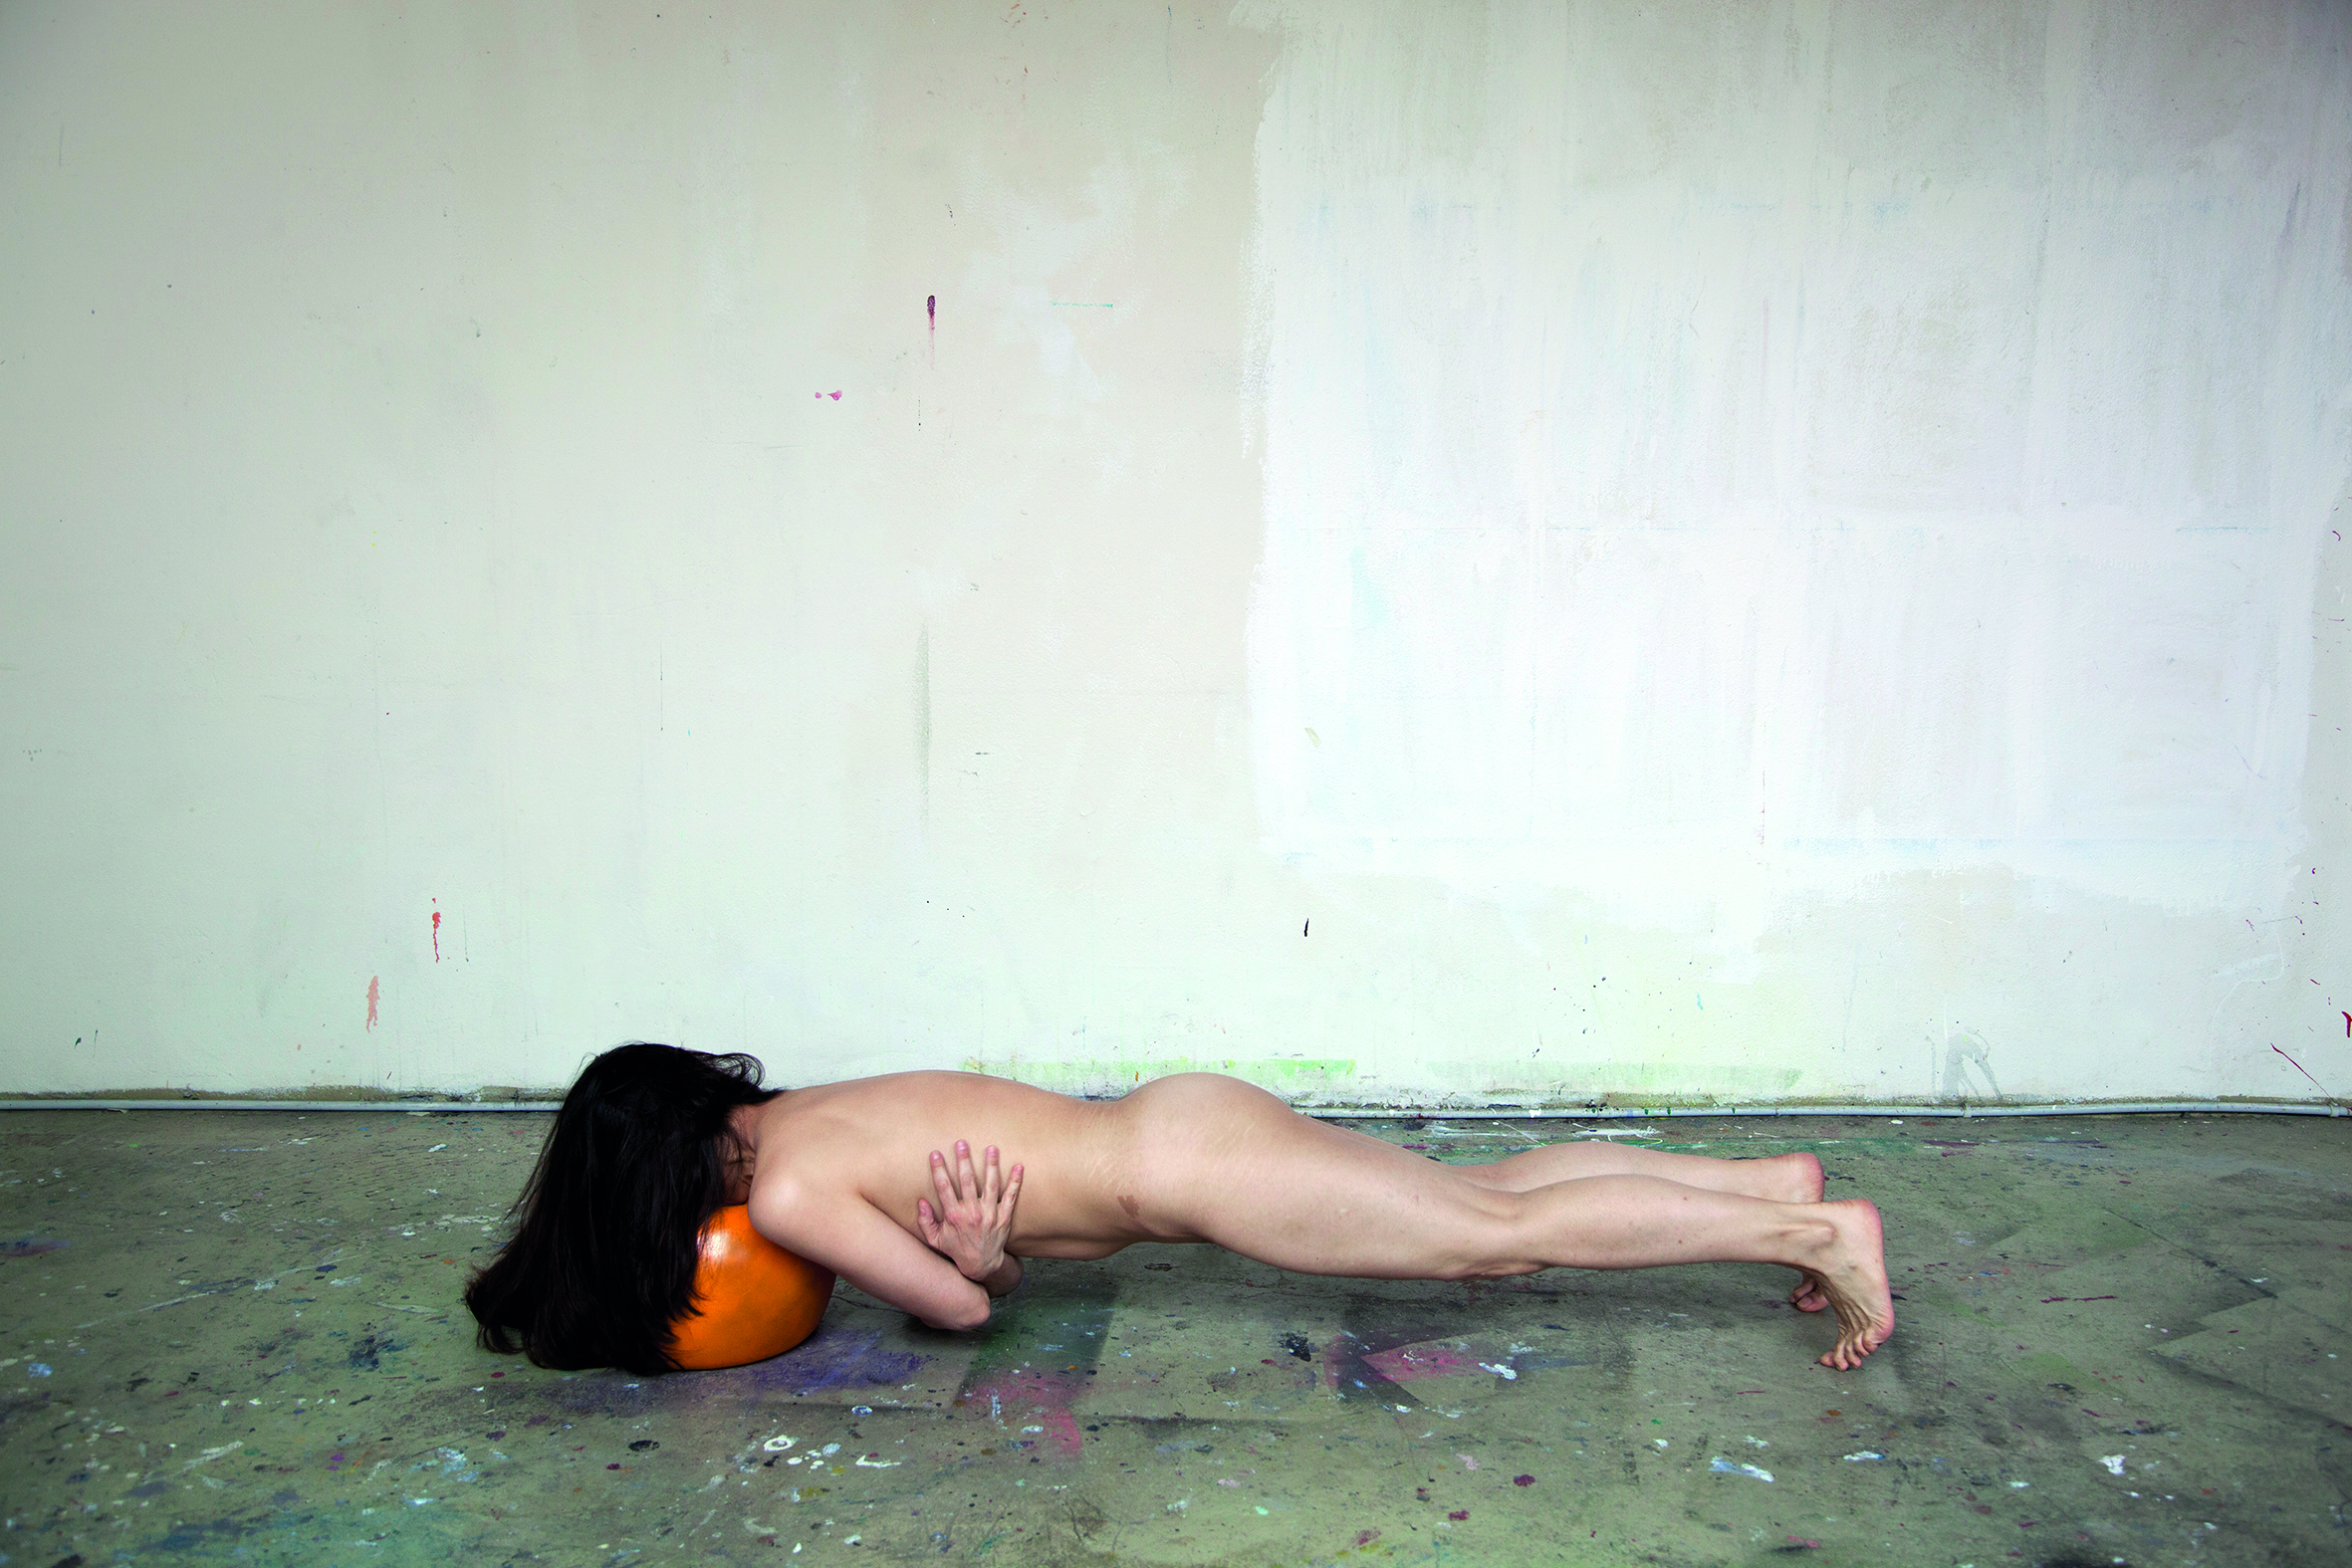 A naked woman in a plank position on the floor of what appears to be an artist's studio, head resting on an orange ball